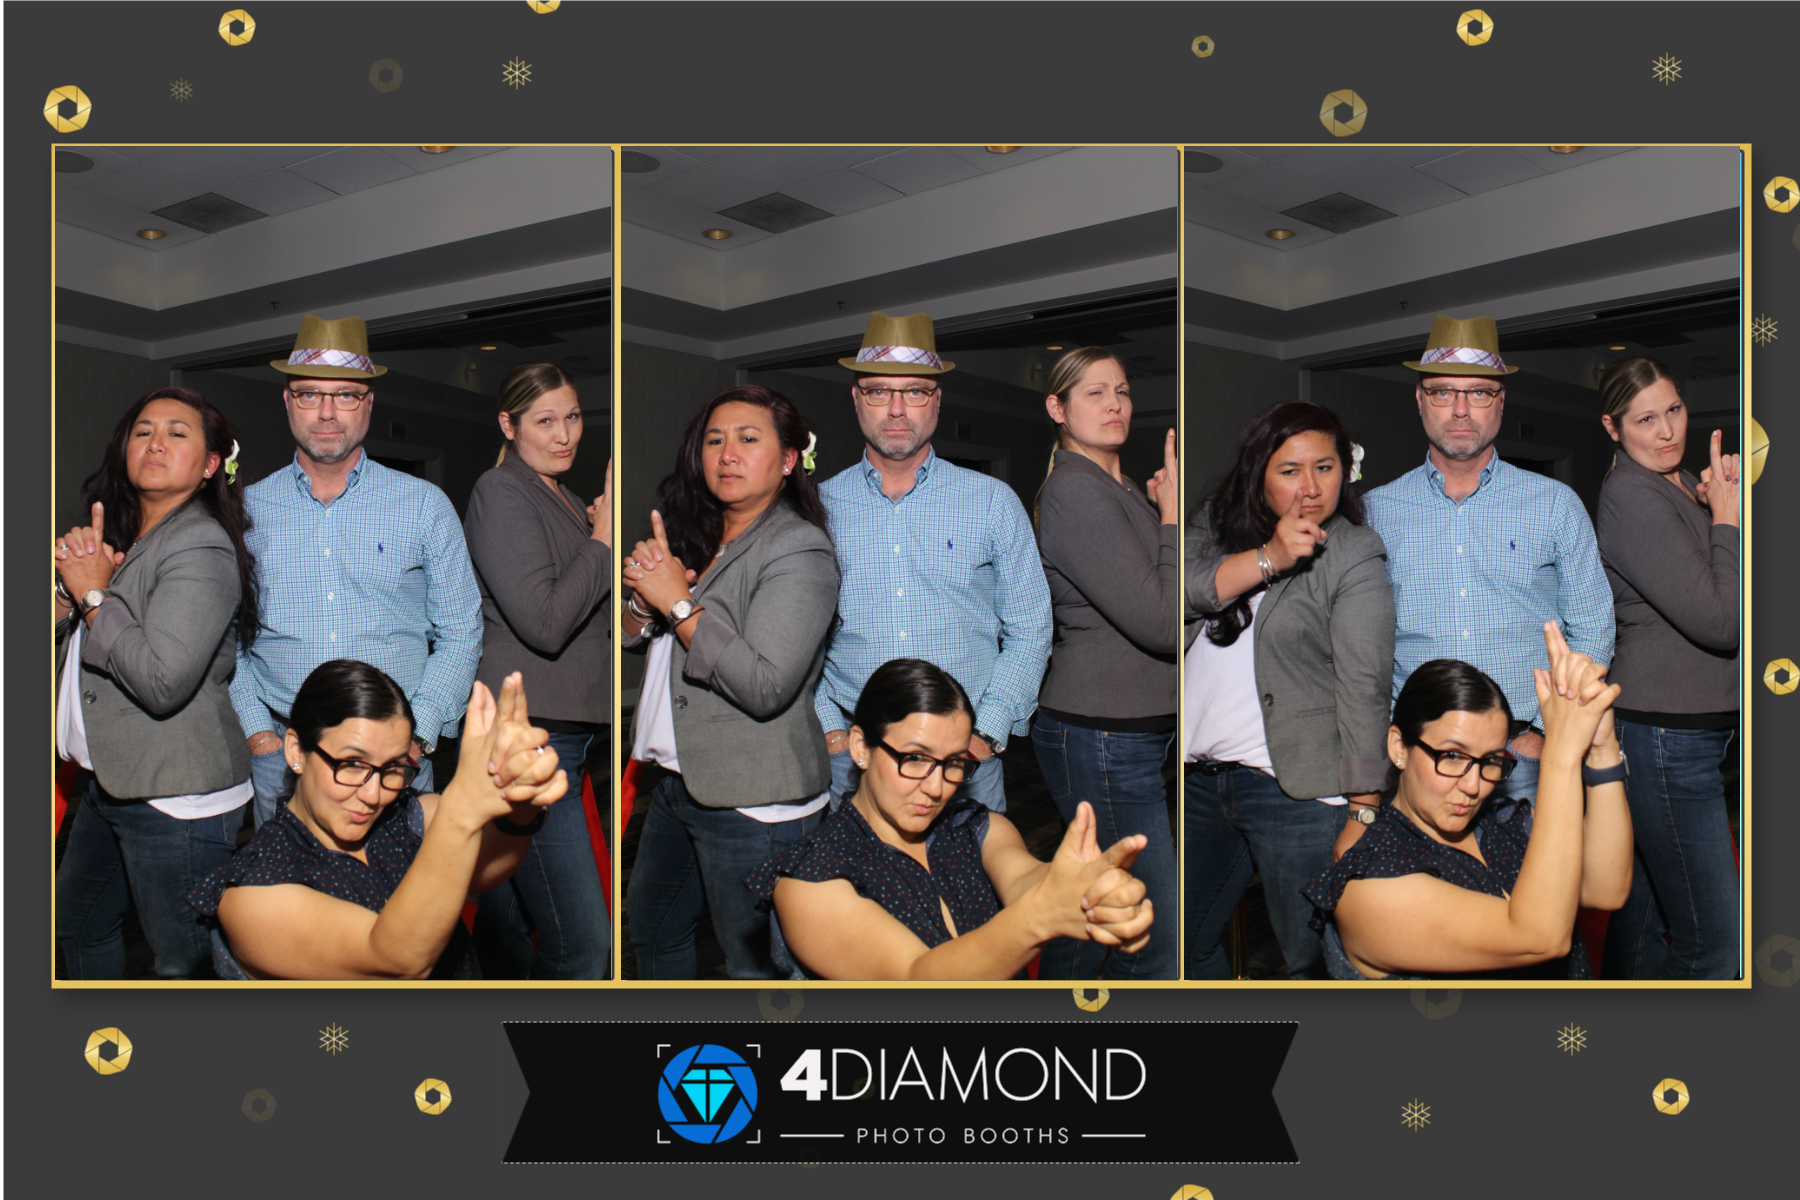 4 Diamond Events & Photo Booths image 5